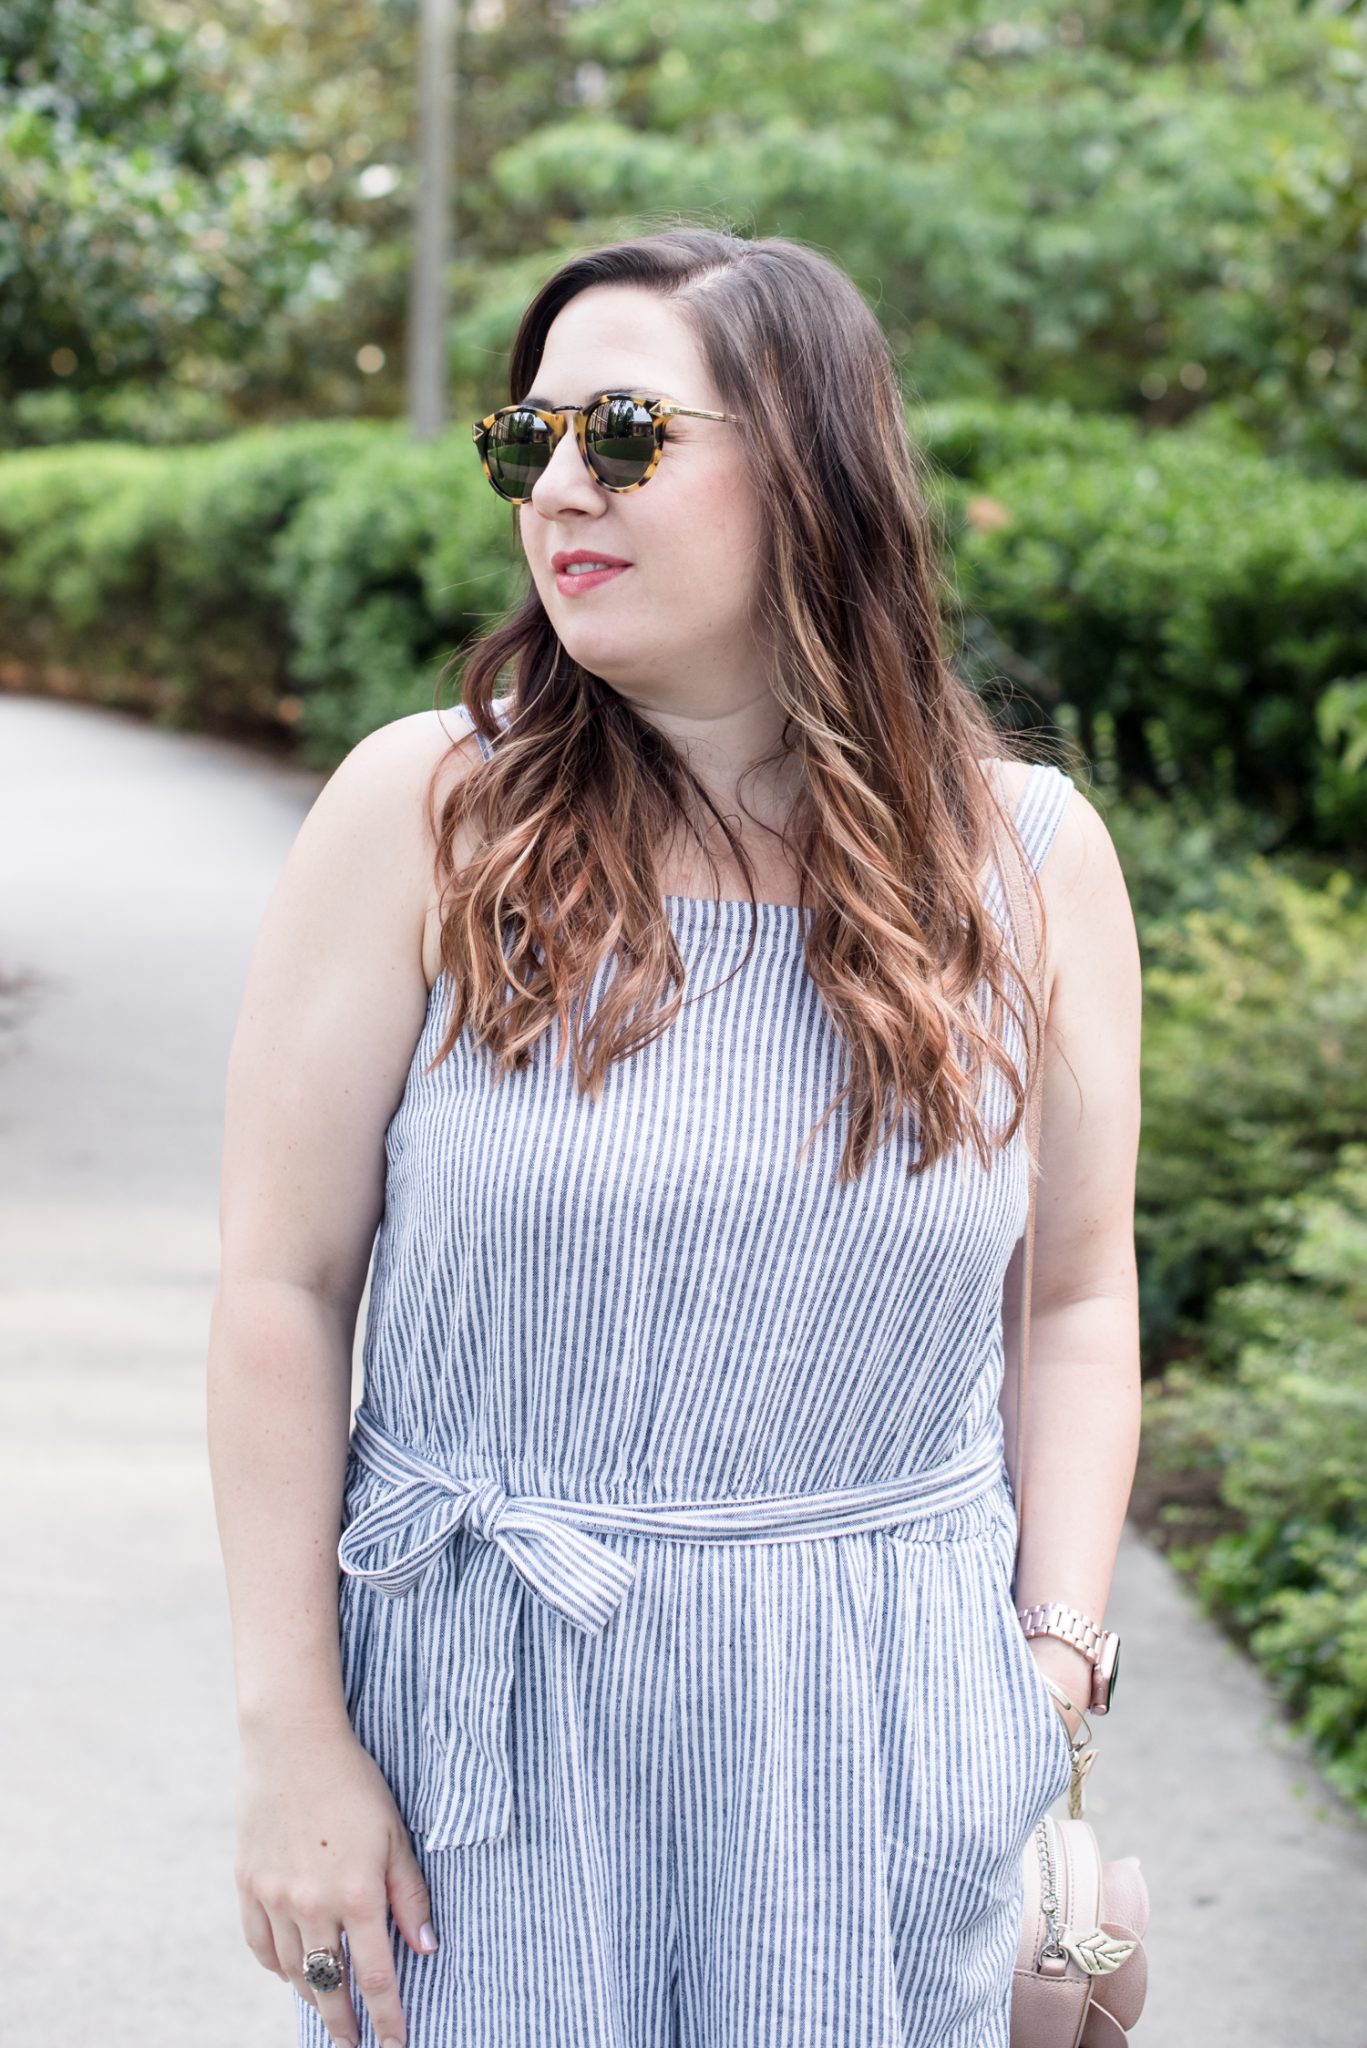 A Summer Seersucker Jumpsuit & Why I Share My Personal Style // @missmollymoon